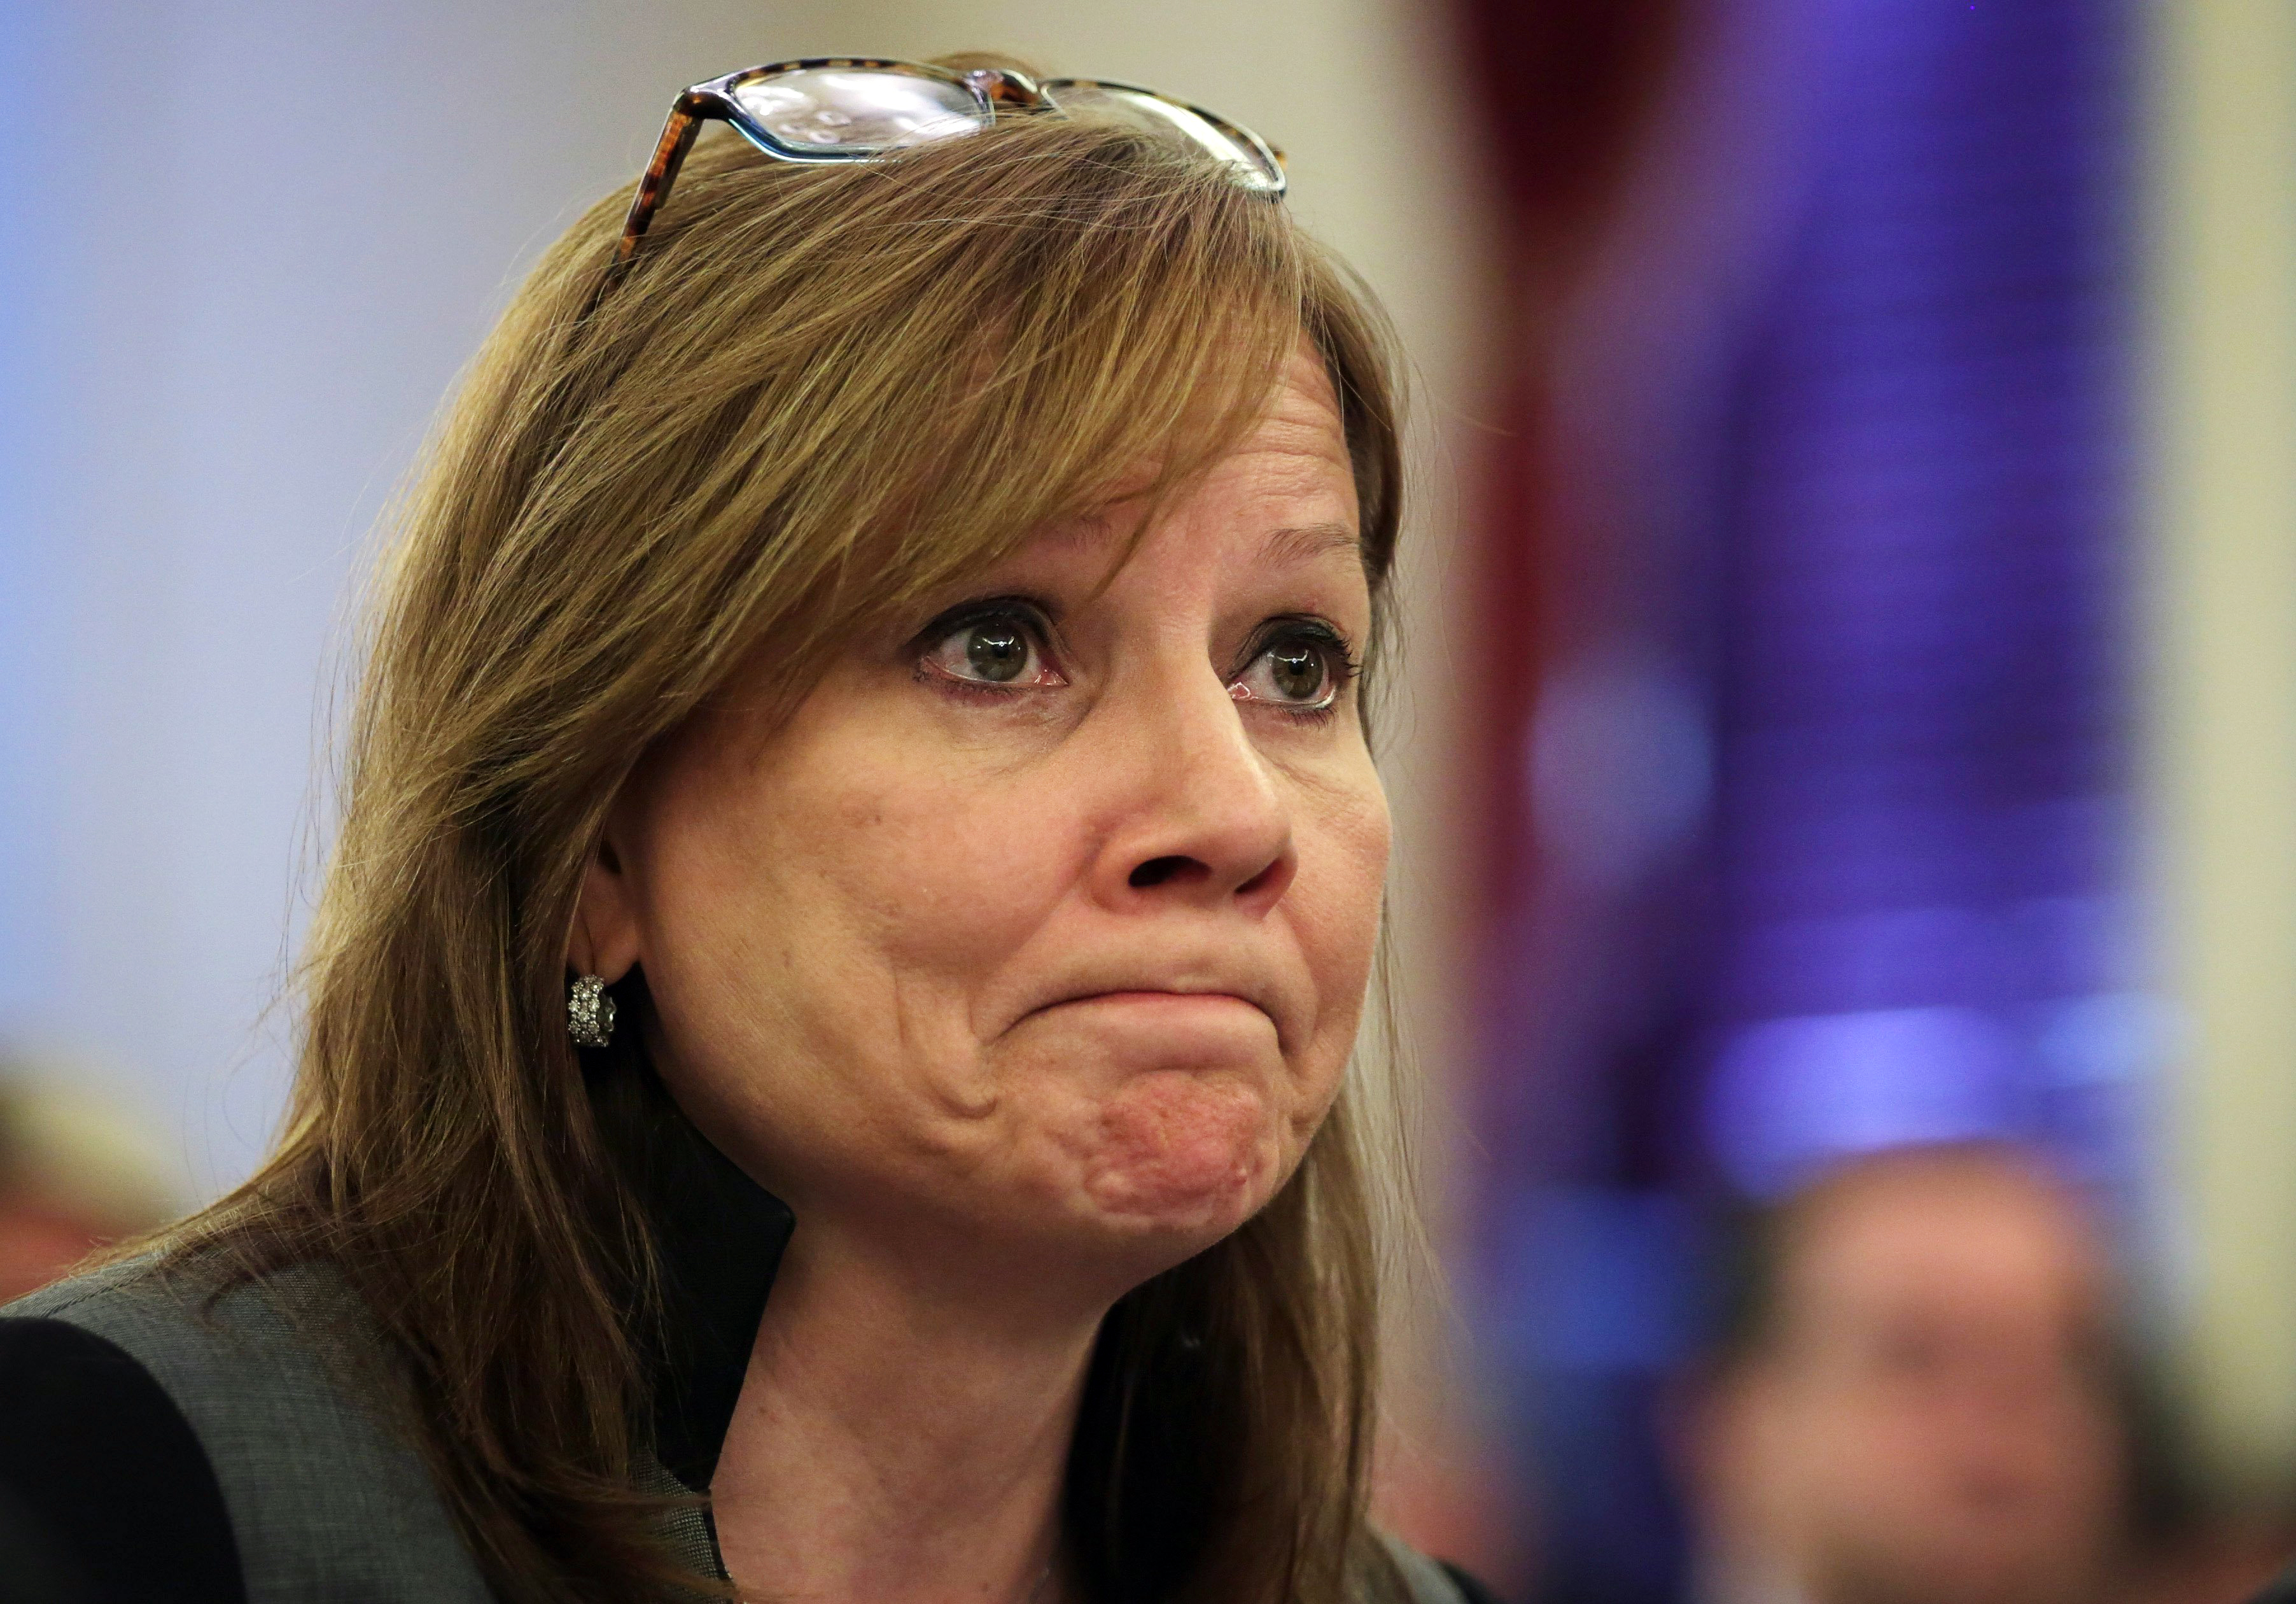 CEO of the General Motors Company Mary Barra testifies during a hearing before the Consumer Protection, Product Safety, and Insurance Subcommittee of the Senate Commerce, Science and Transportation Committee on July 17, 2014 on Capitol Hill in Washington.